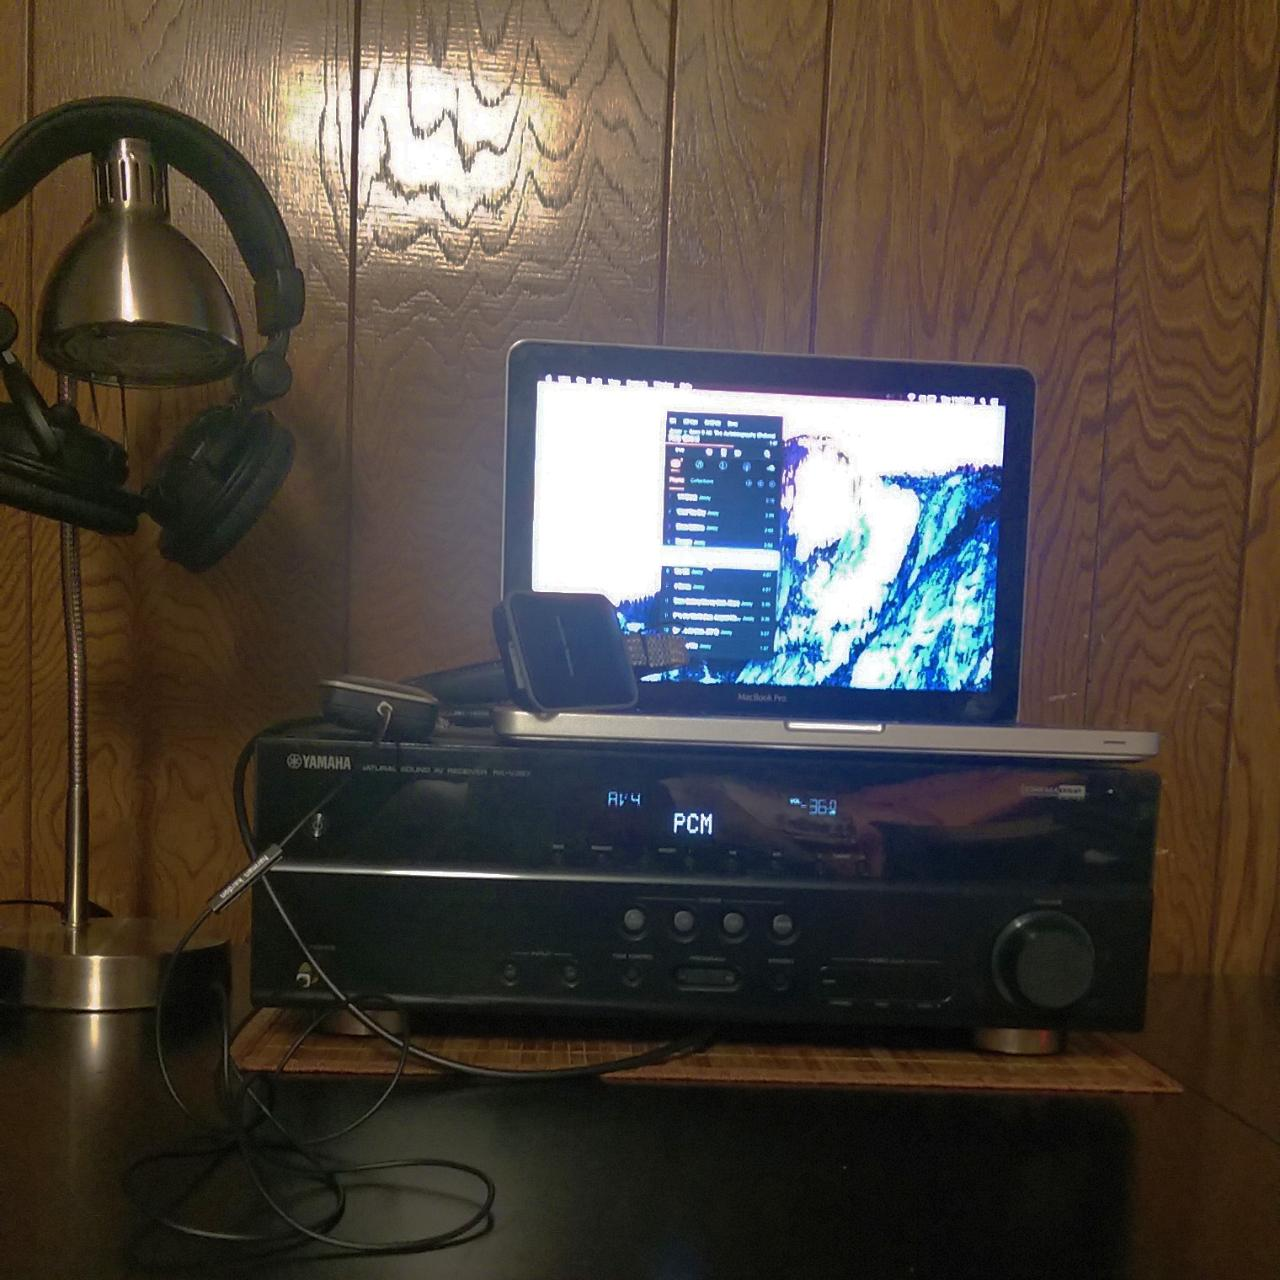 I'm a newbie to the world of Hi-Fi music. This is my current setup. A Macbook Pro, Vox...